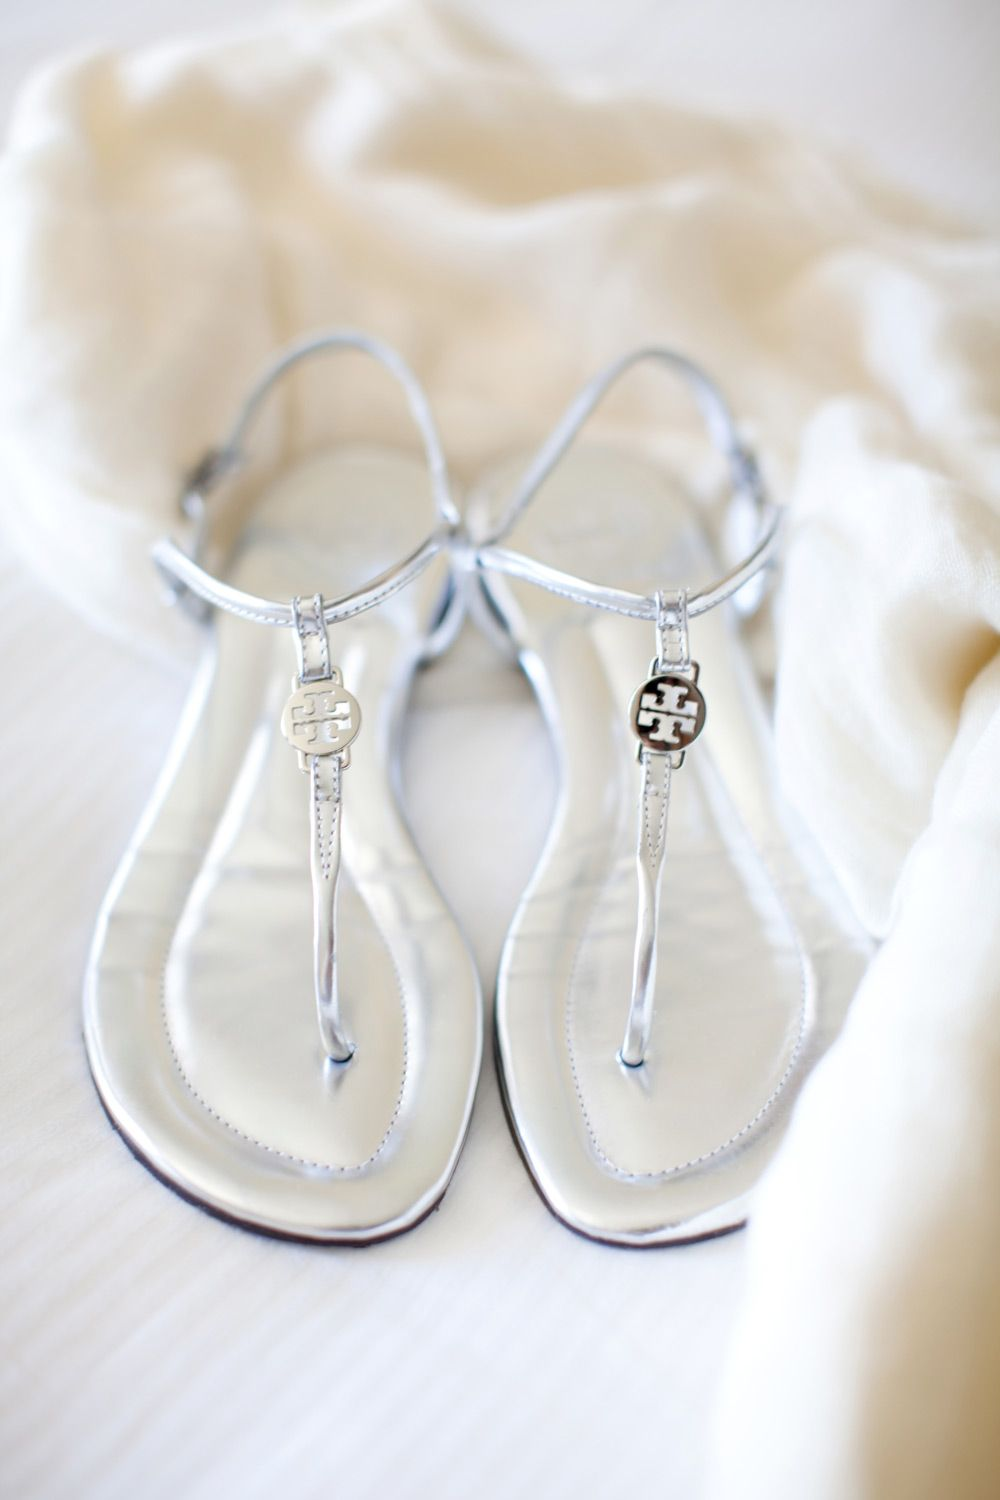 Simple Shoes For Wedding Tory Birch Sandals